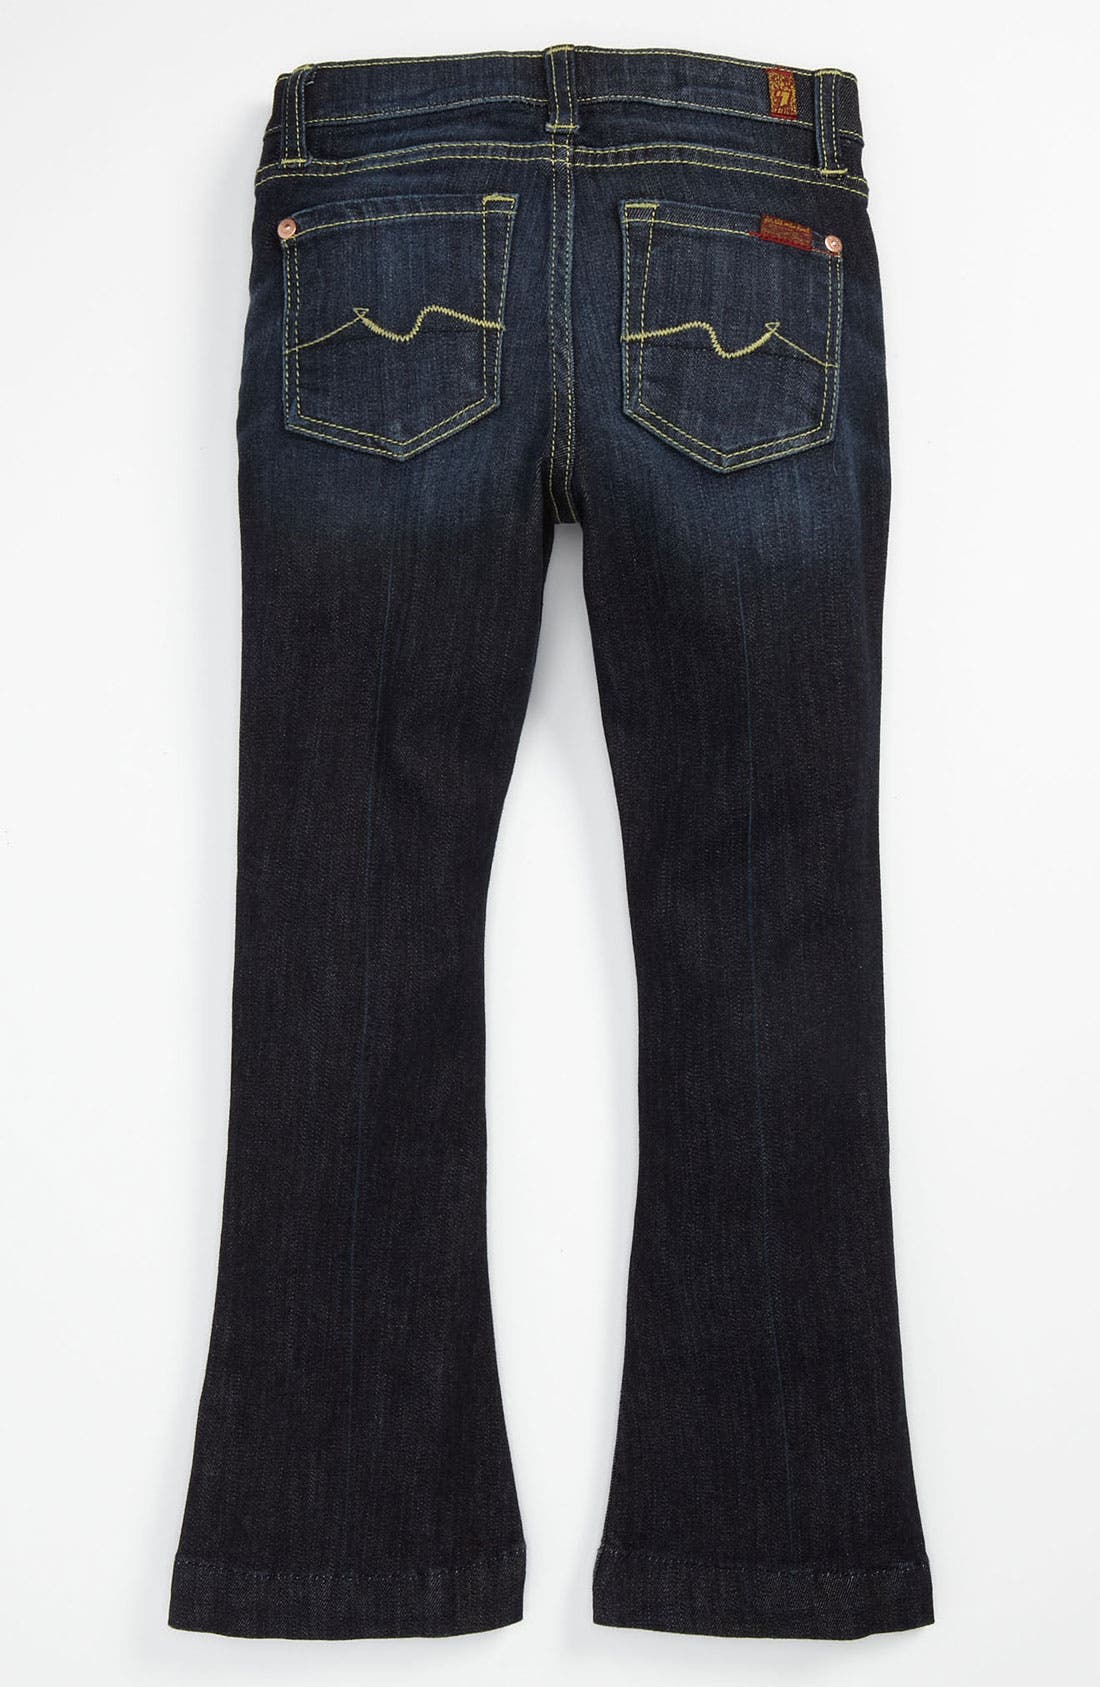 Alternate Image 1 Selected - 7 For All Mankind® 'Kaylie' Slim Fit Bootcut Jeans (Little Girls)